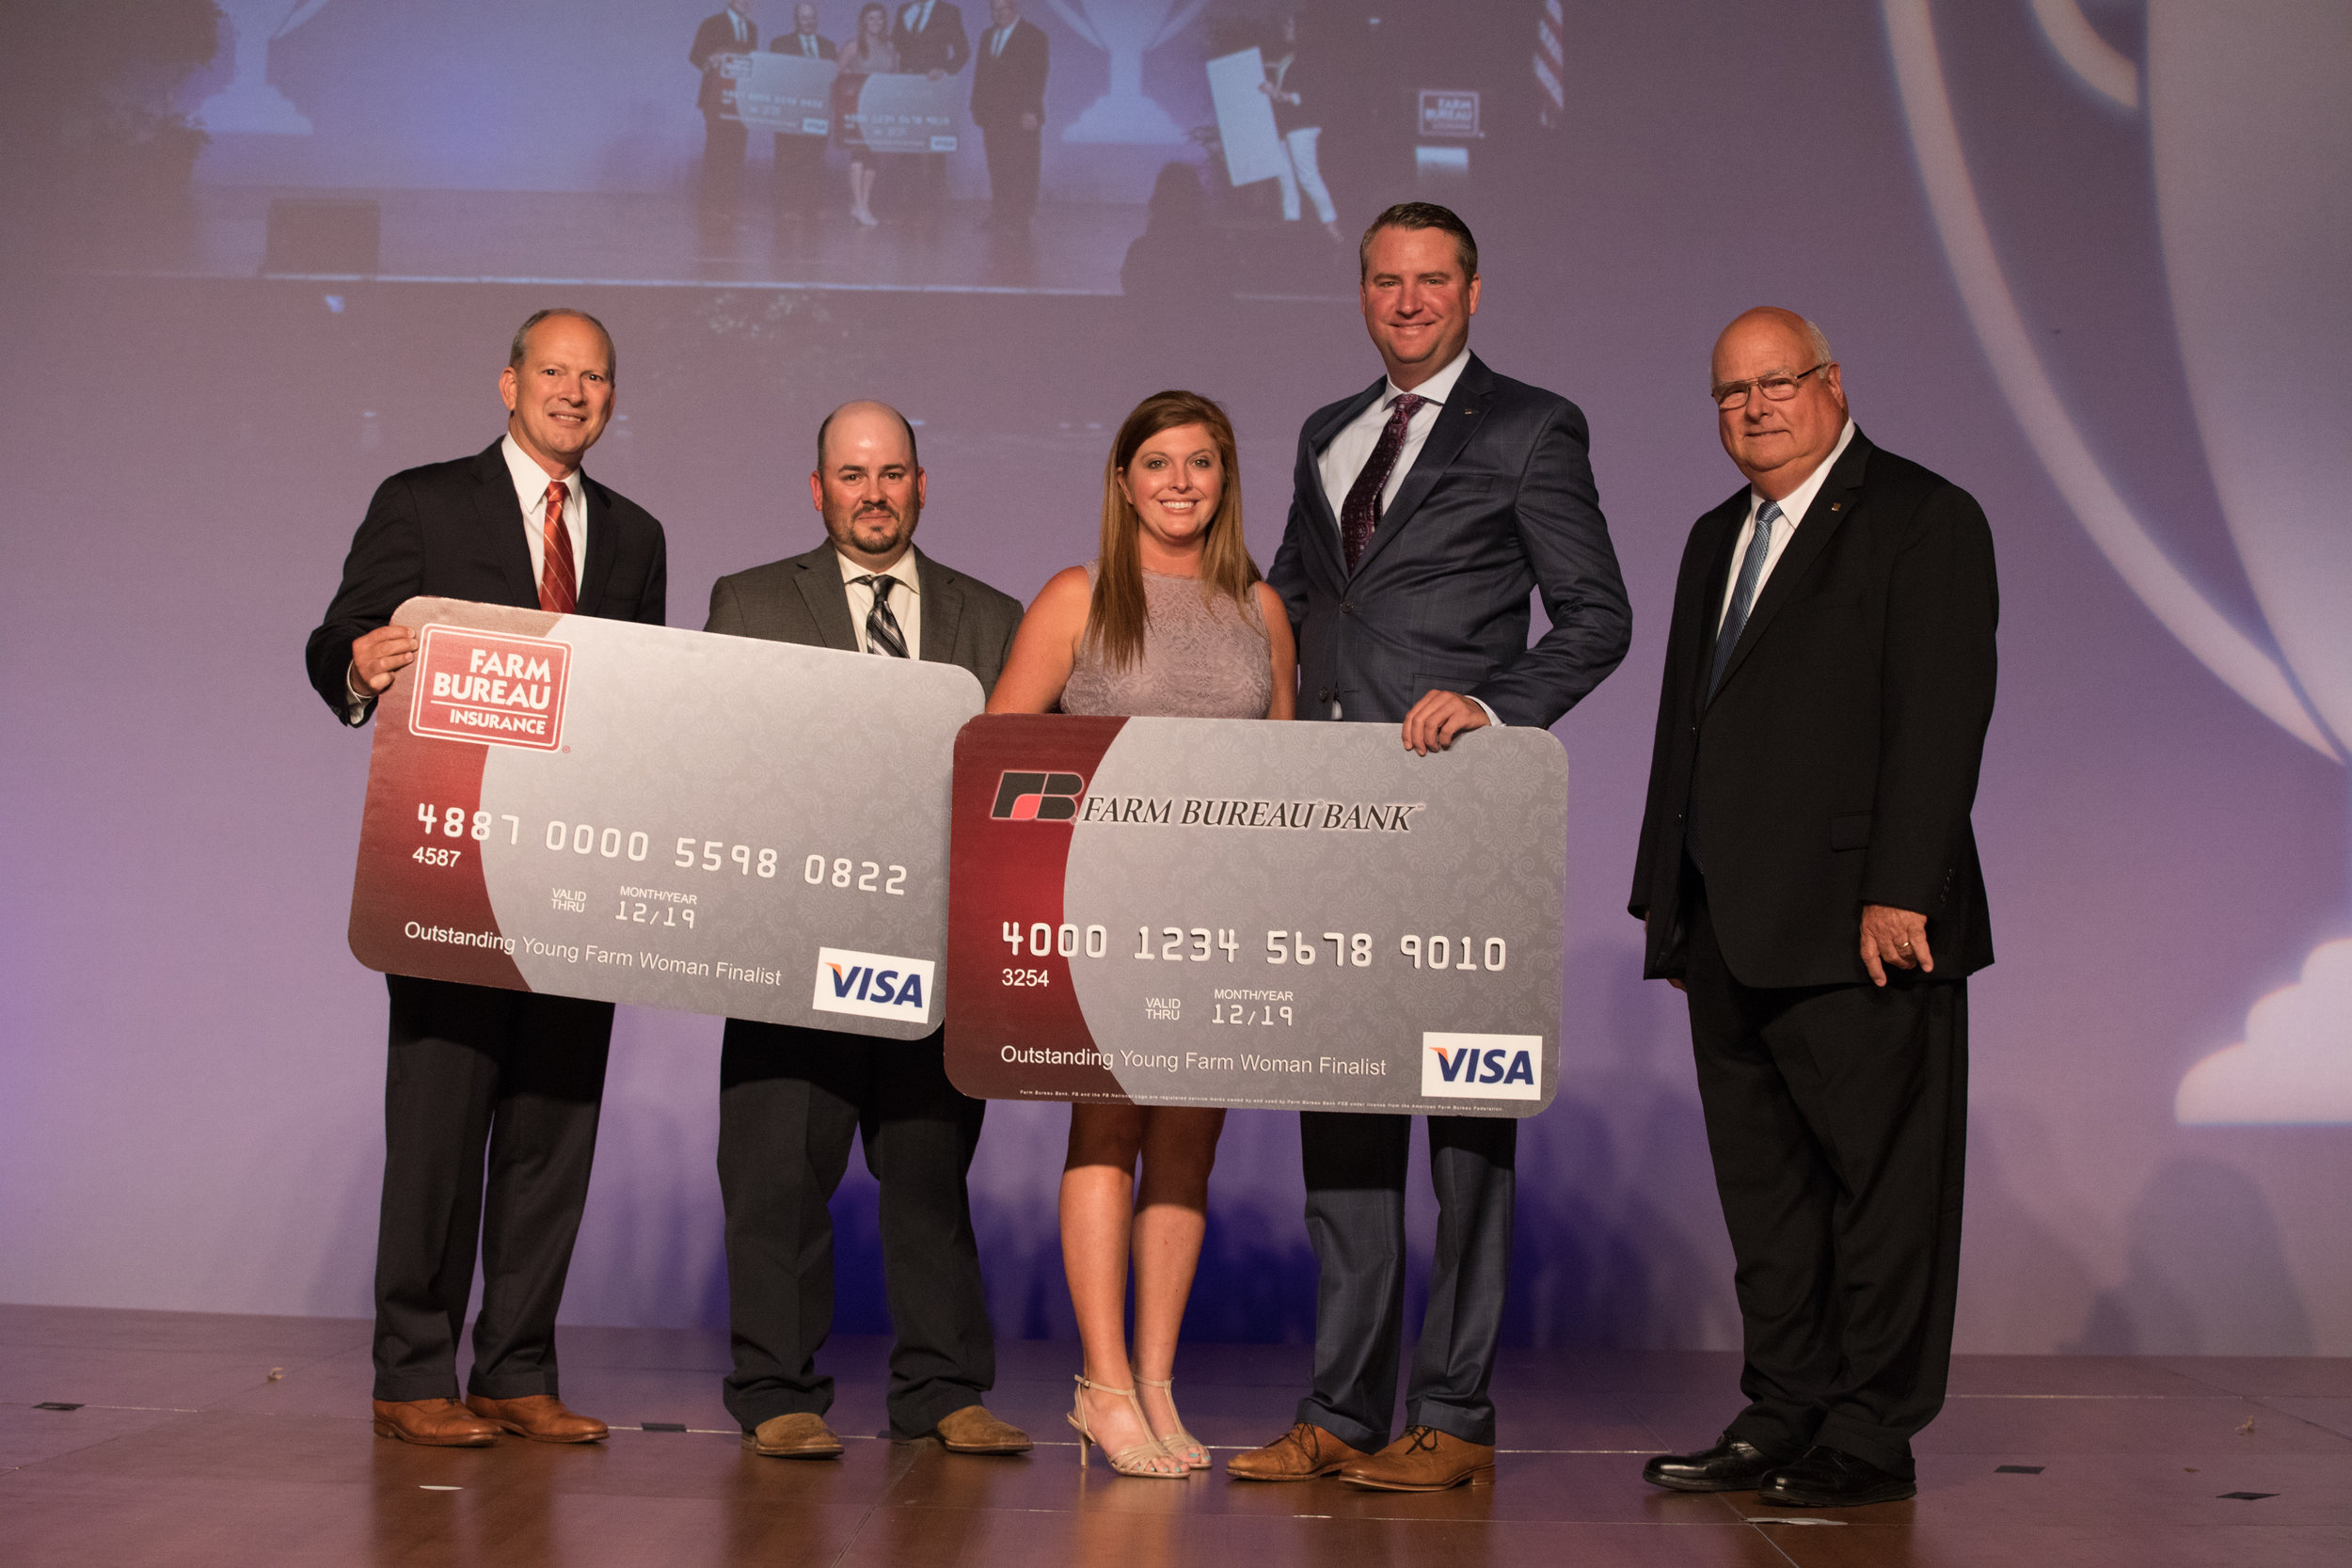 Pictured from left to right, Louisiana Farm Bureau Insurance Executive Vice President and State Manager, Blaine Briggs, Louisiana Farm Bureau Young Farmers and Ranchers Chair, Matt Gravois, 2018 Outstanding Young Farm Woman, Kacie Luckett, Louisiana Farm Bureau Insurance State Sales Manager, Will Waldrop, and Louisiana Farm Bureau Federation President Ronnie Anderson.